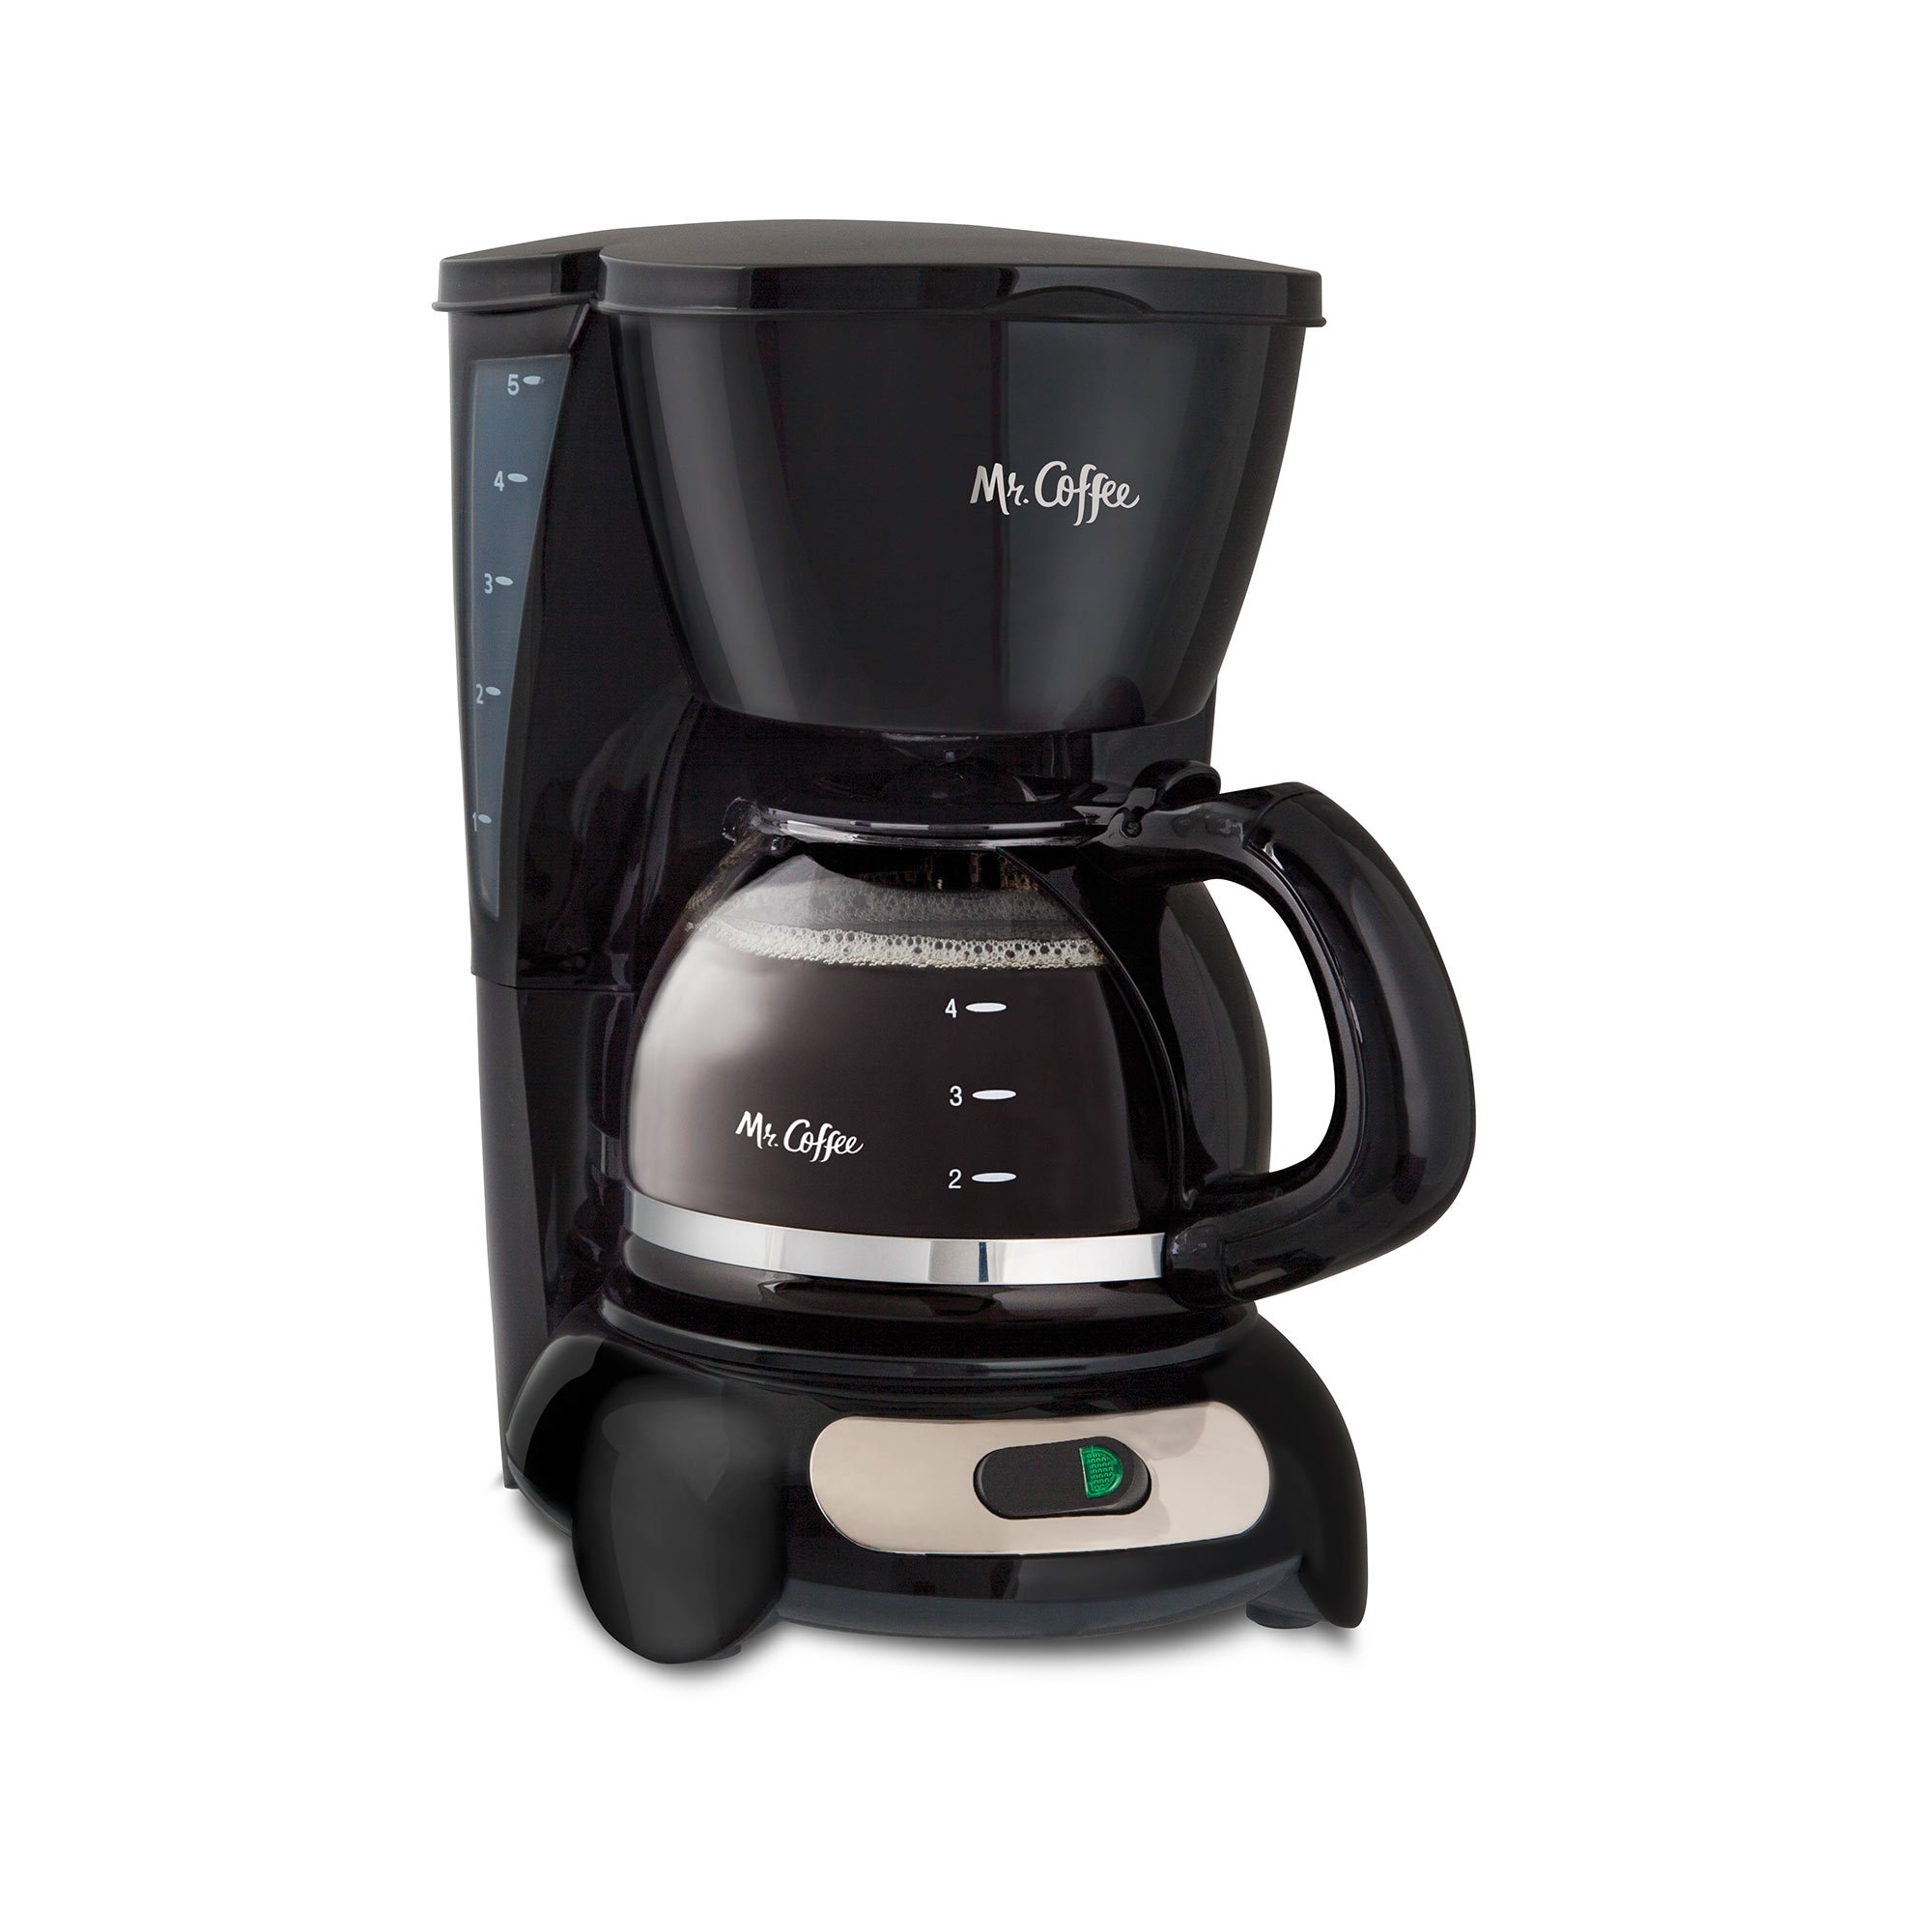 Mr. Coffee 5-Cup Classic Brewing Coffee Maker for a Perfect Rich-Tasting cofffee TF7 (Certified Refurbished)